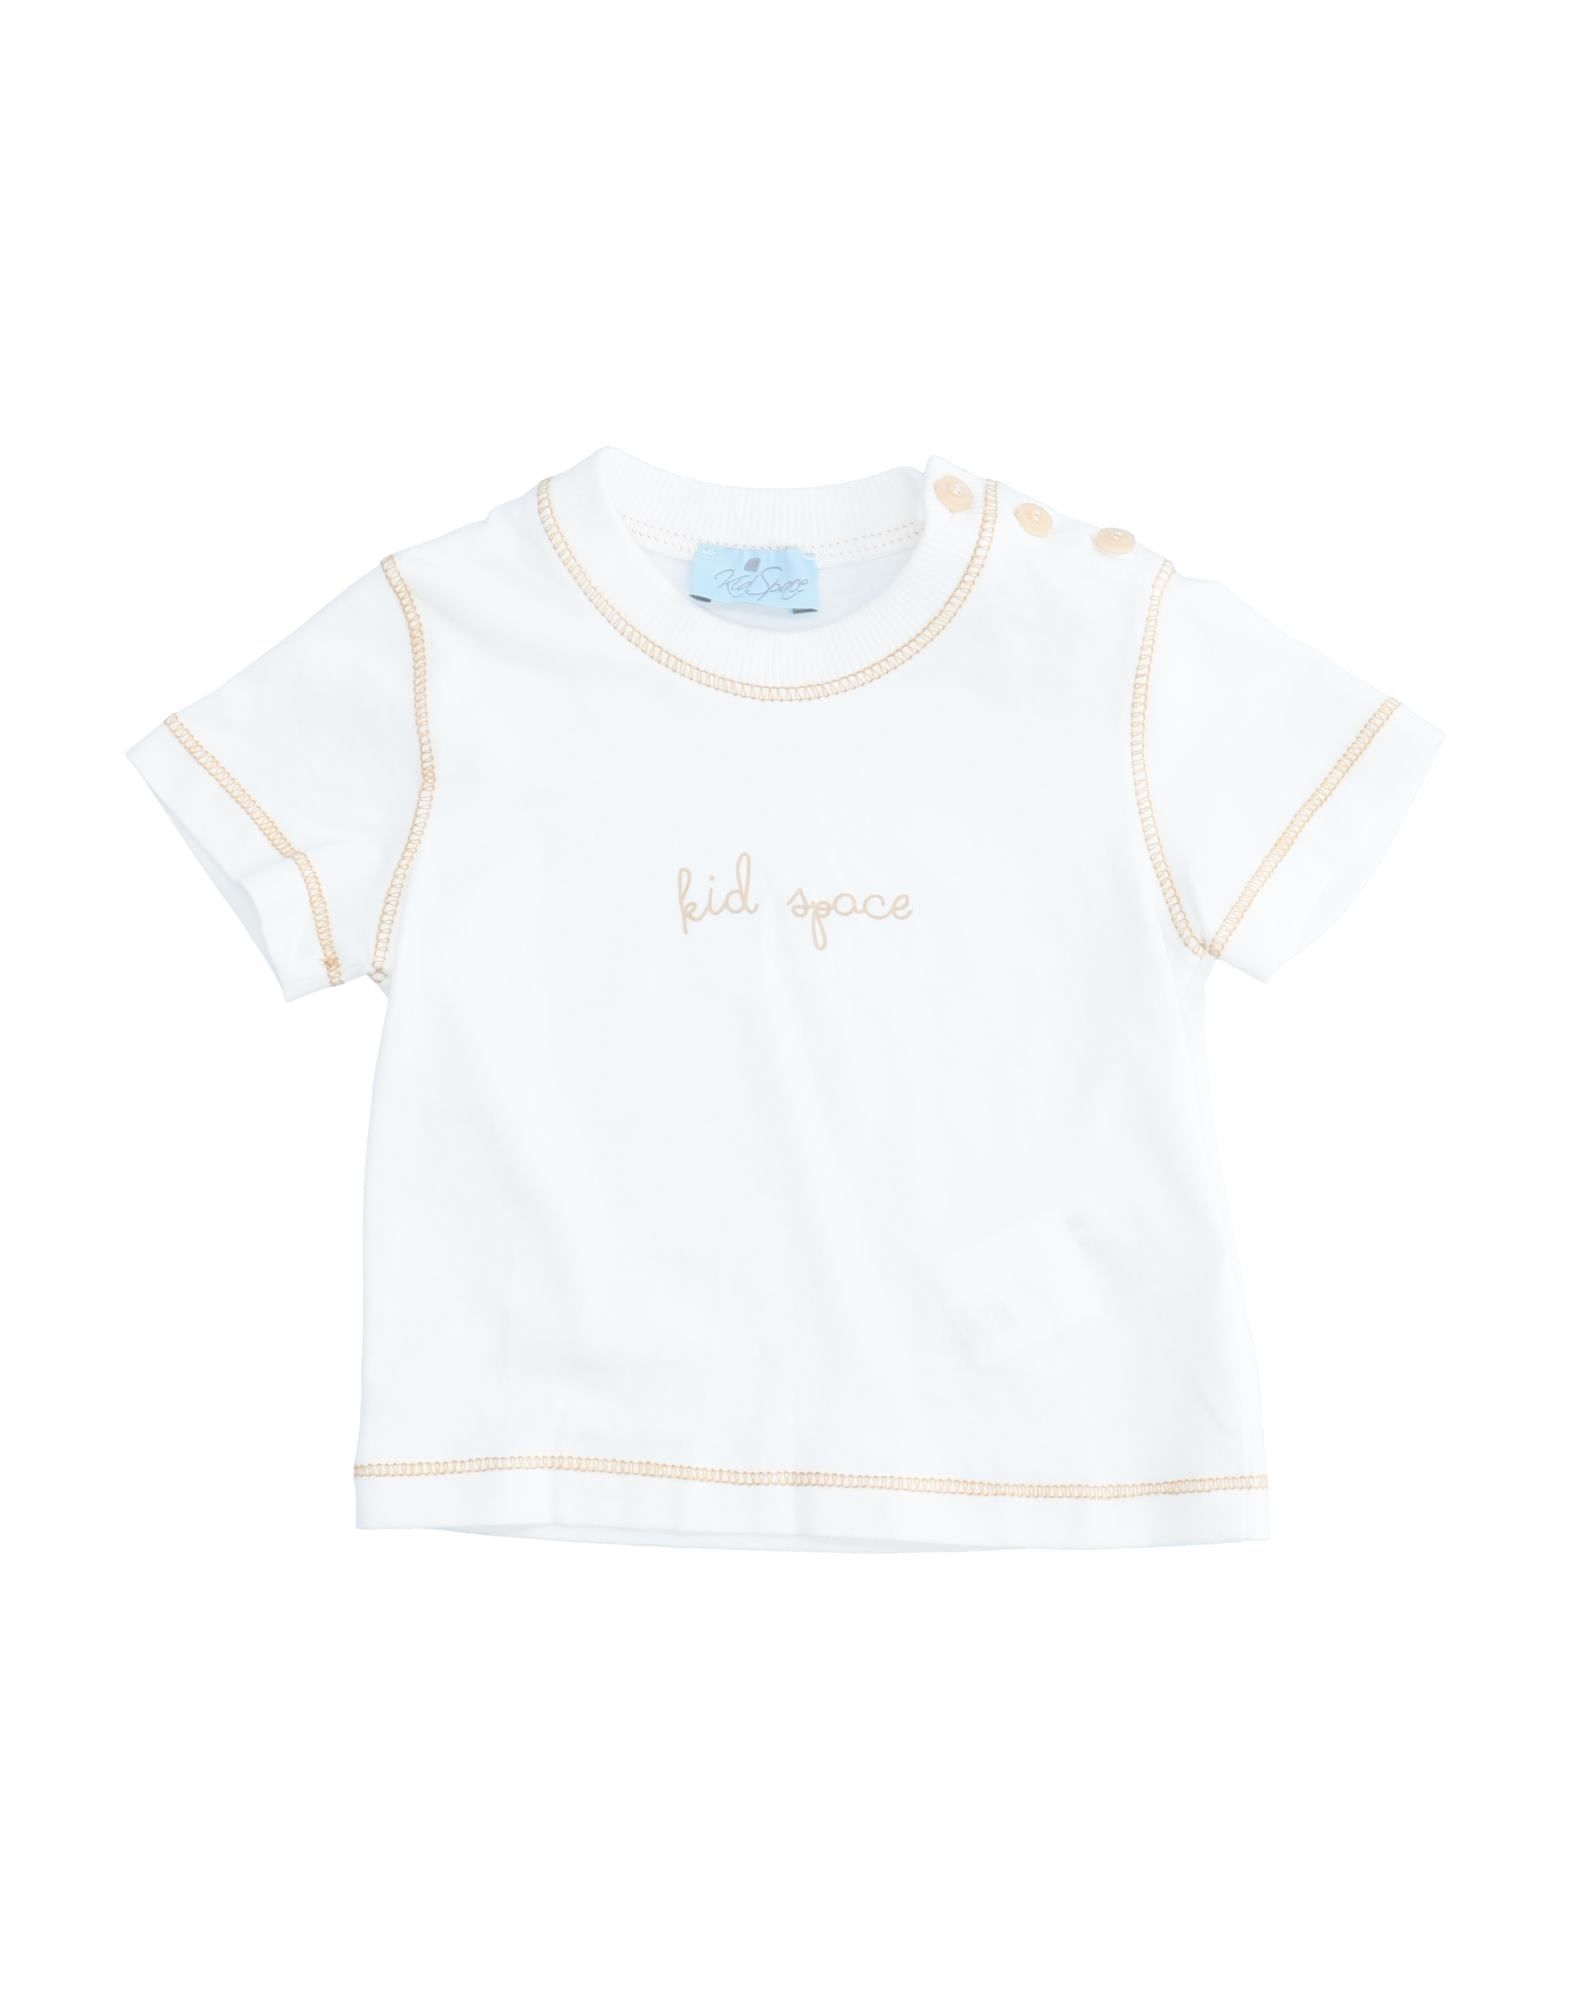 Kid Space Kids' T-shirts In White